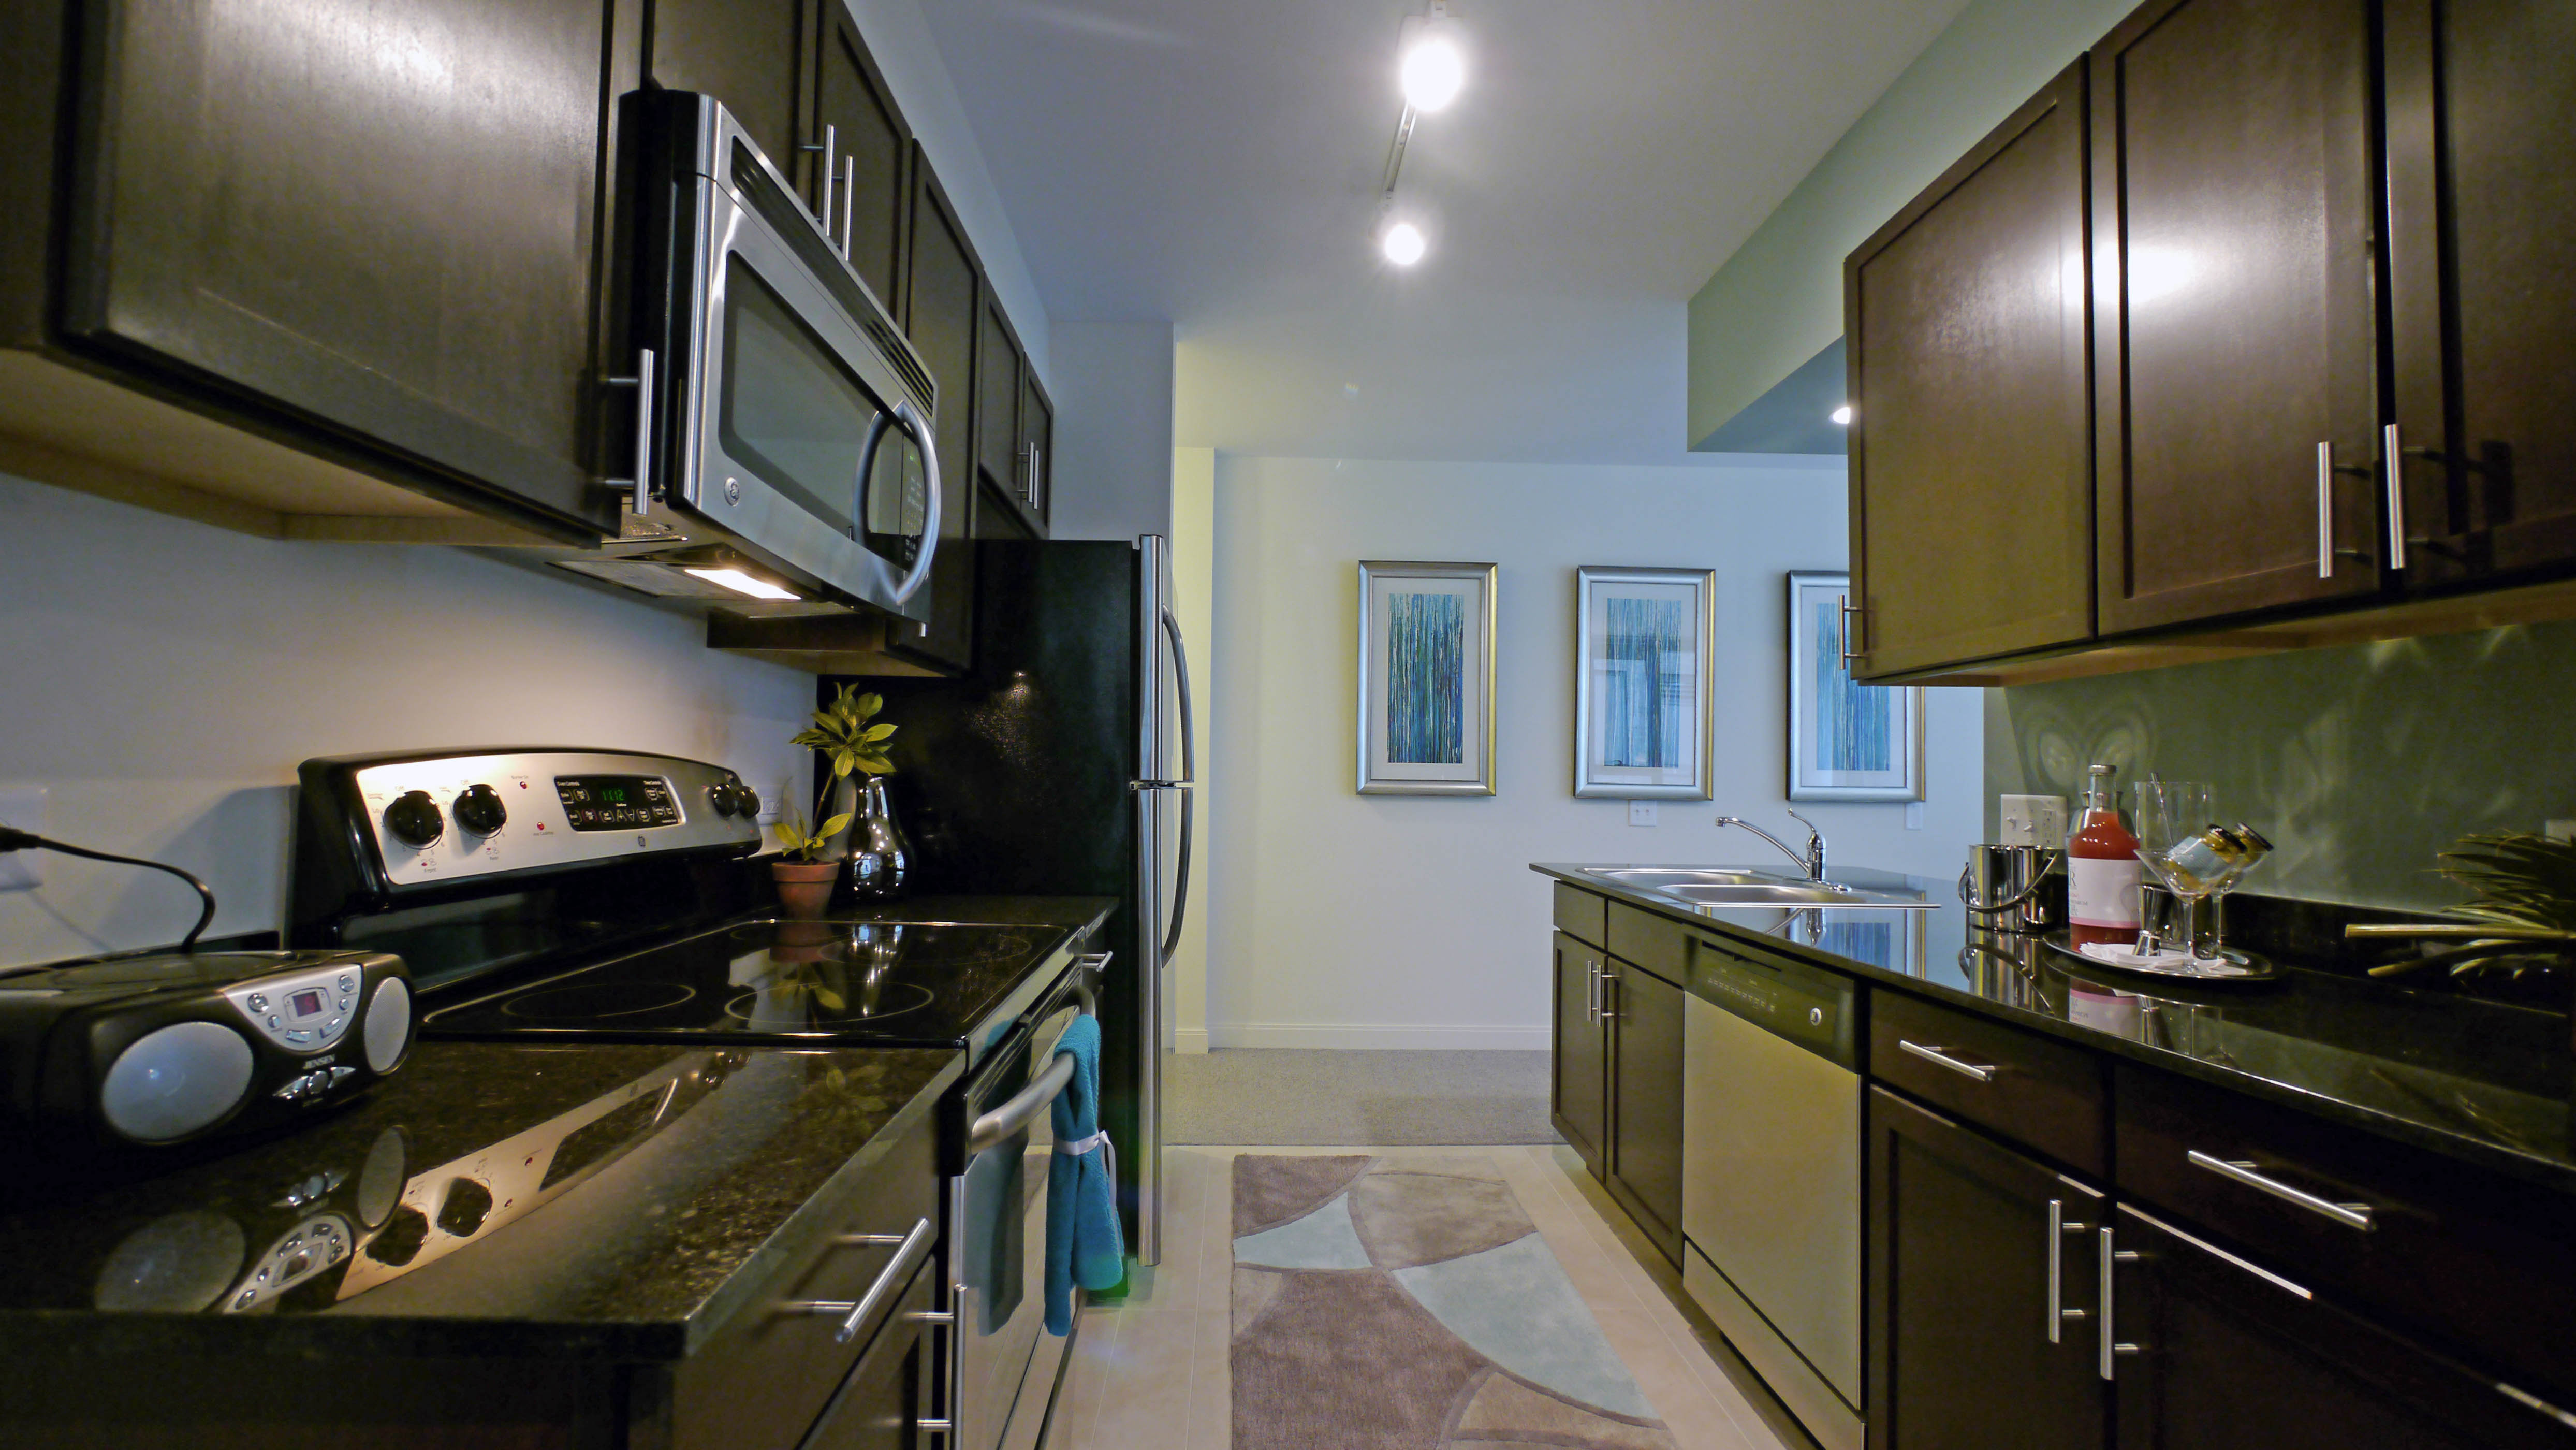 Floor plans are accessible online but you ll need to contact the